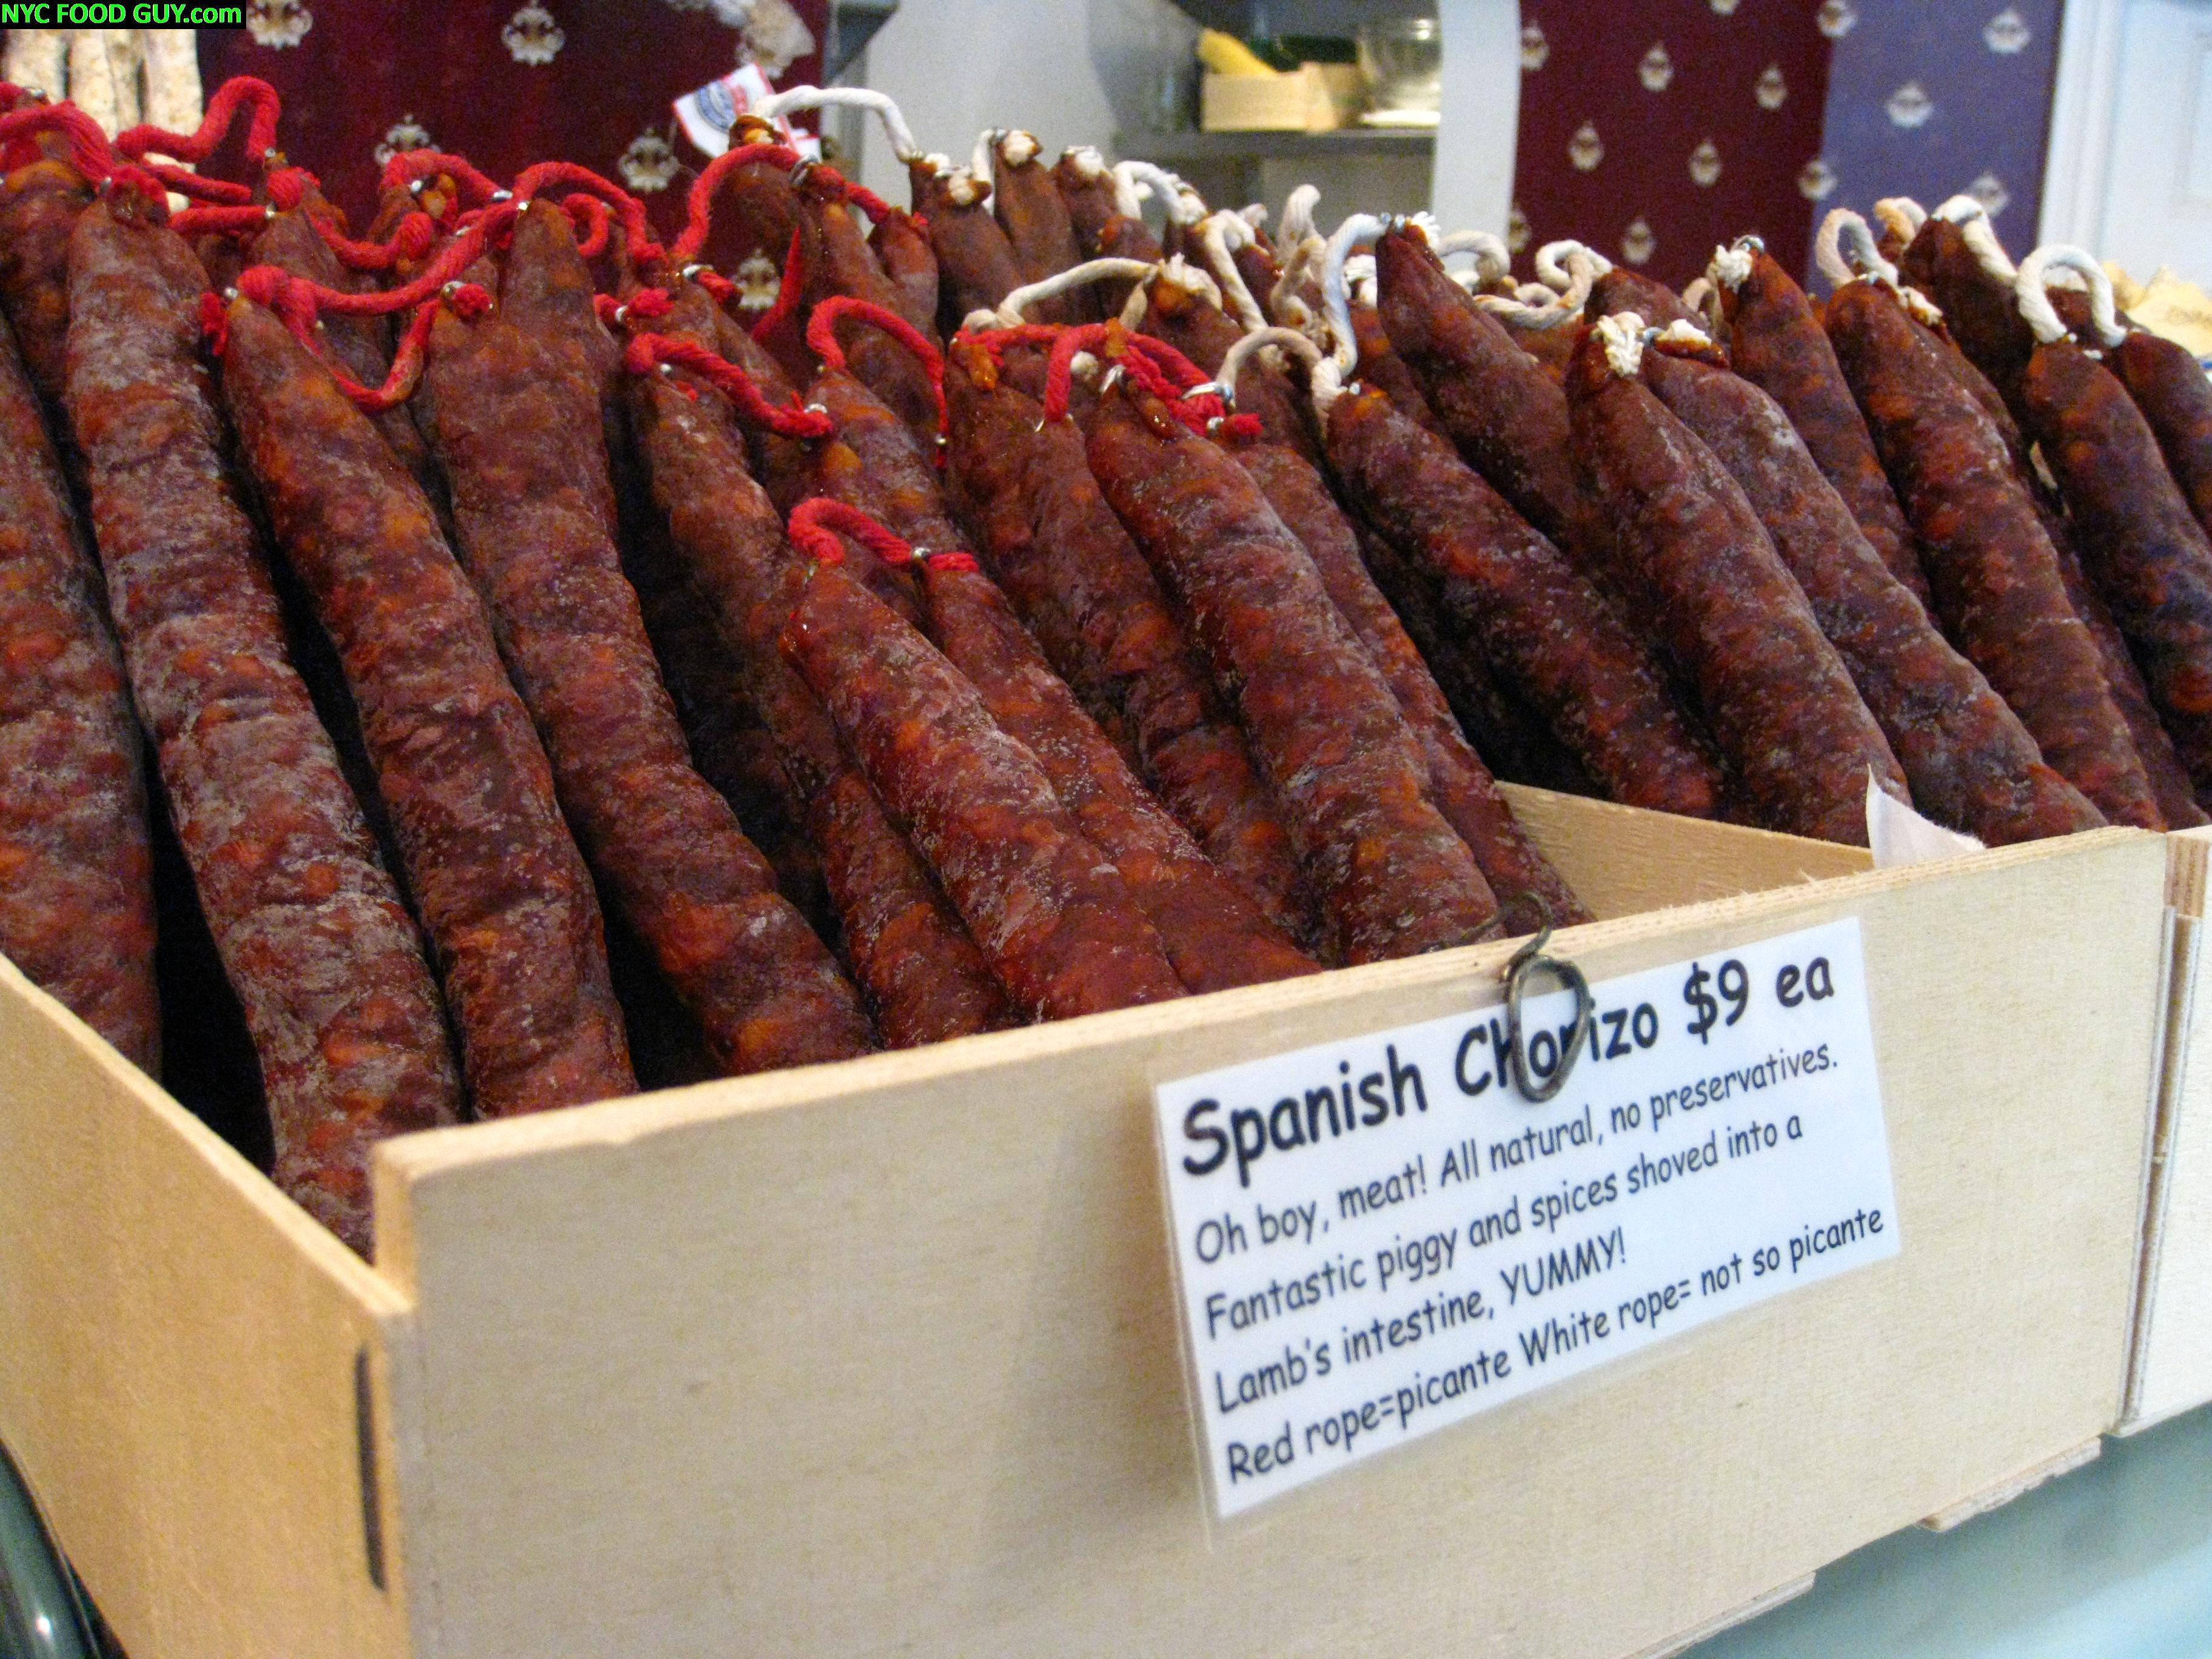 Spicy & Mild Chorizo at Bedford Cheese Shop